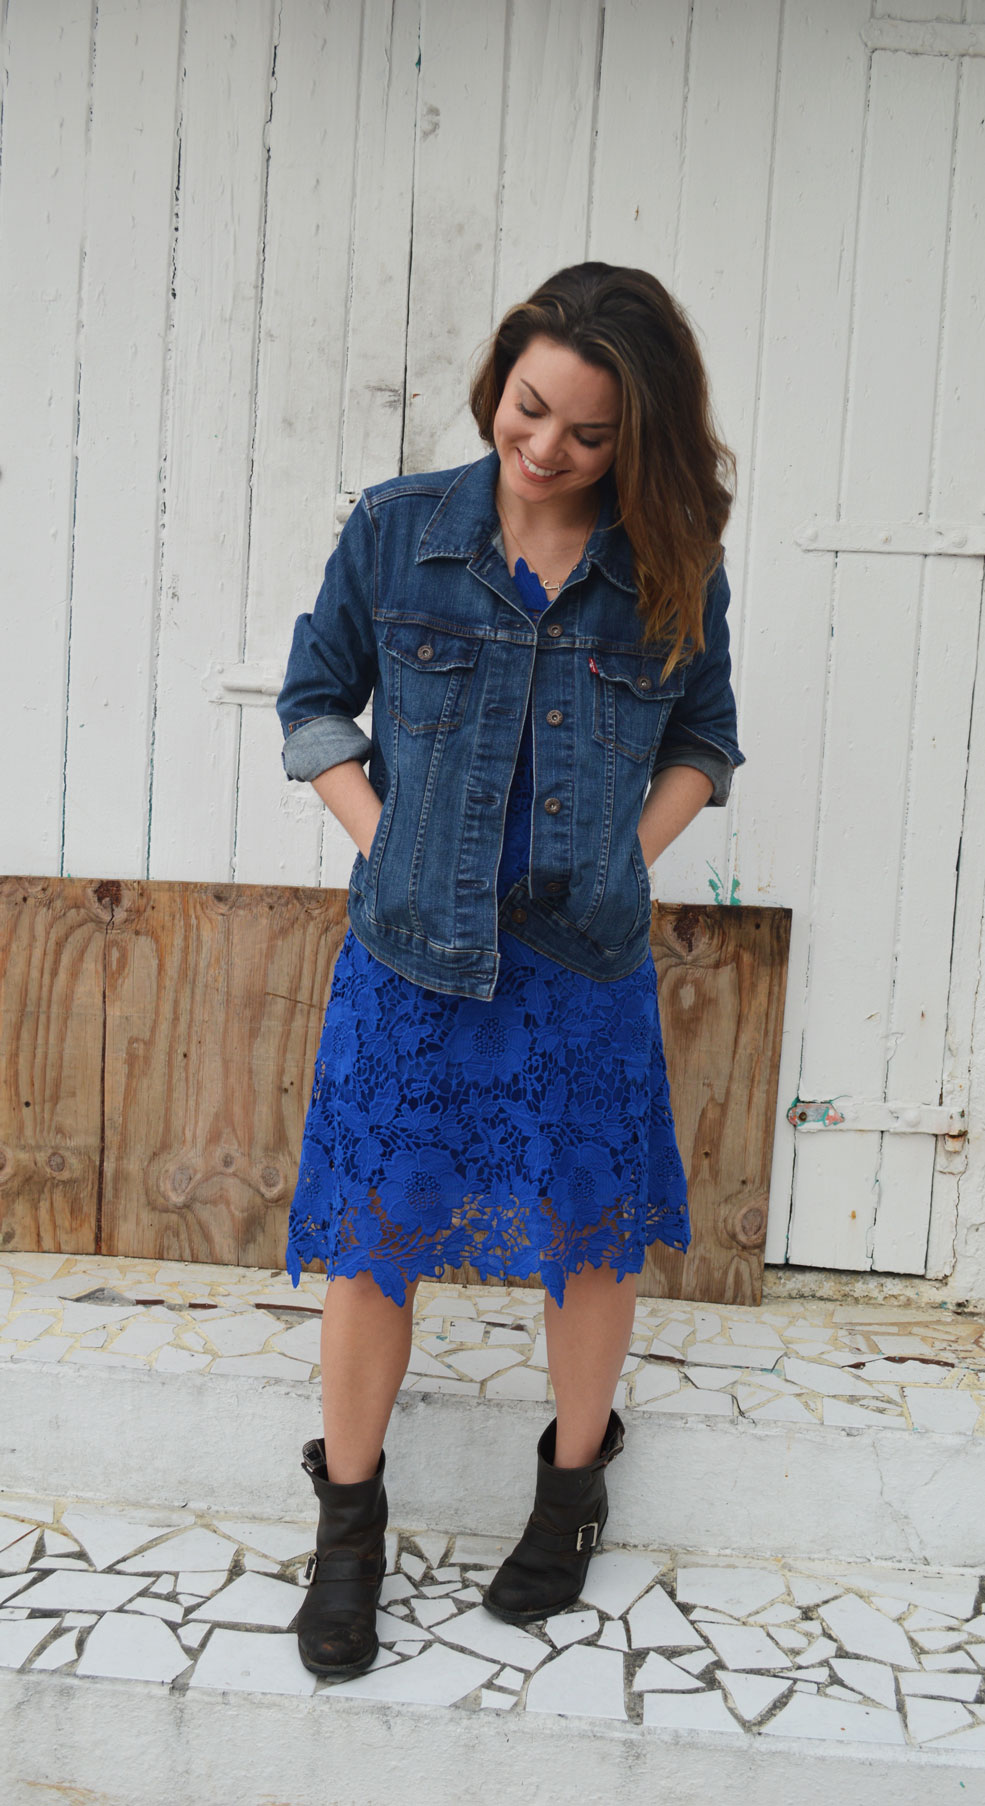 DenimJacketBlueDress3.jpg